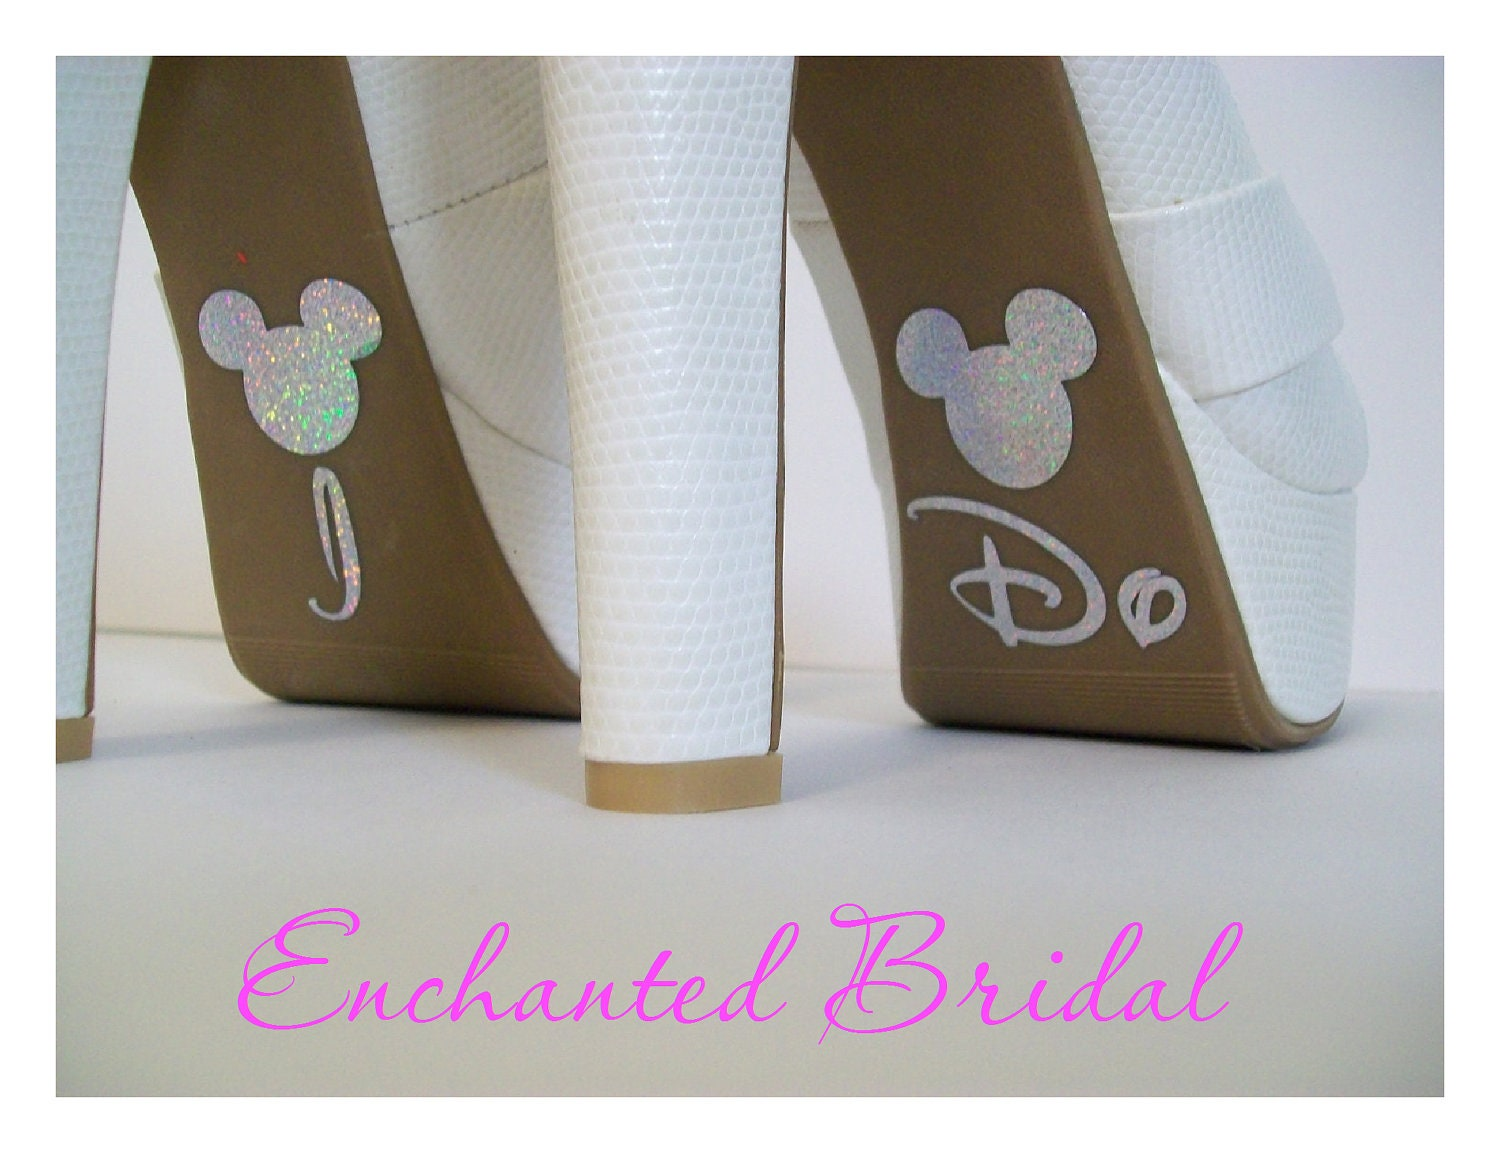 I Do Stickers For The Bottom Of Wedding Shoes